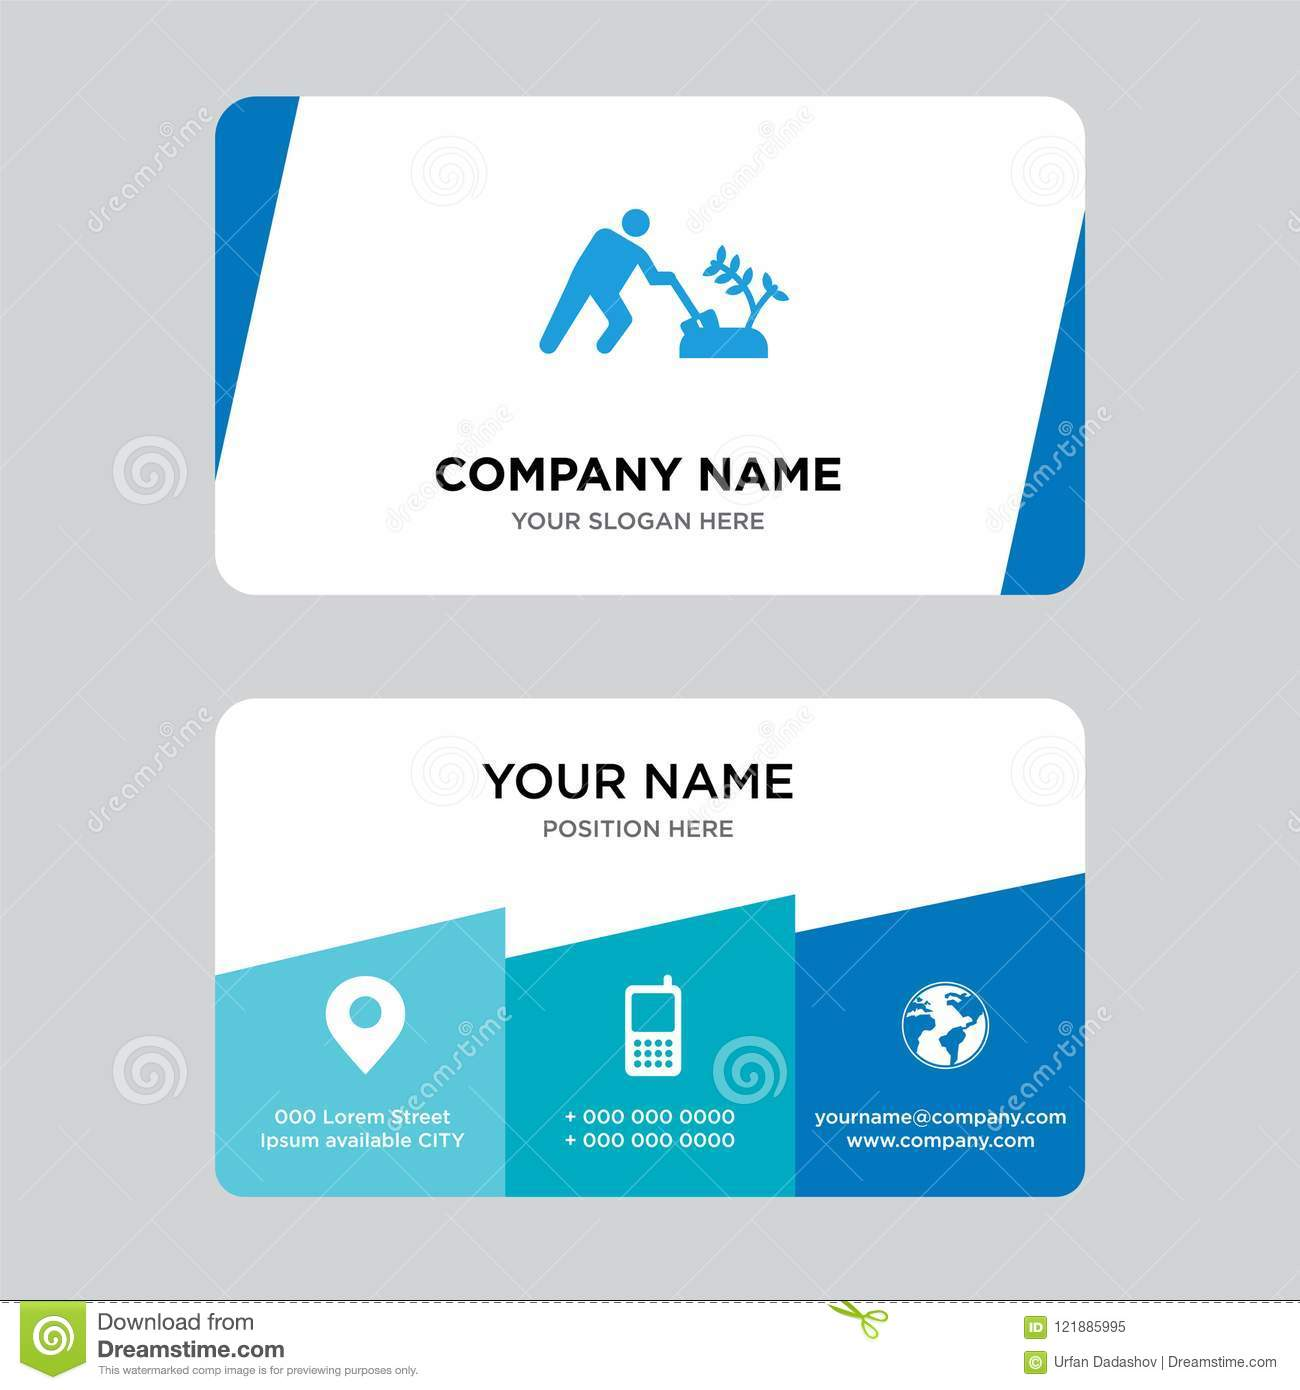 Gardening Business Card Design Template Visiting For Your Company